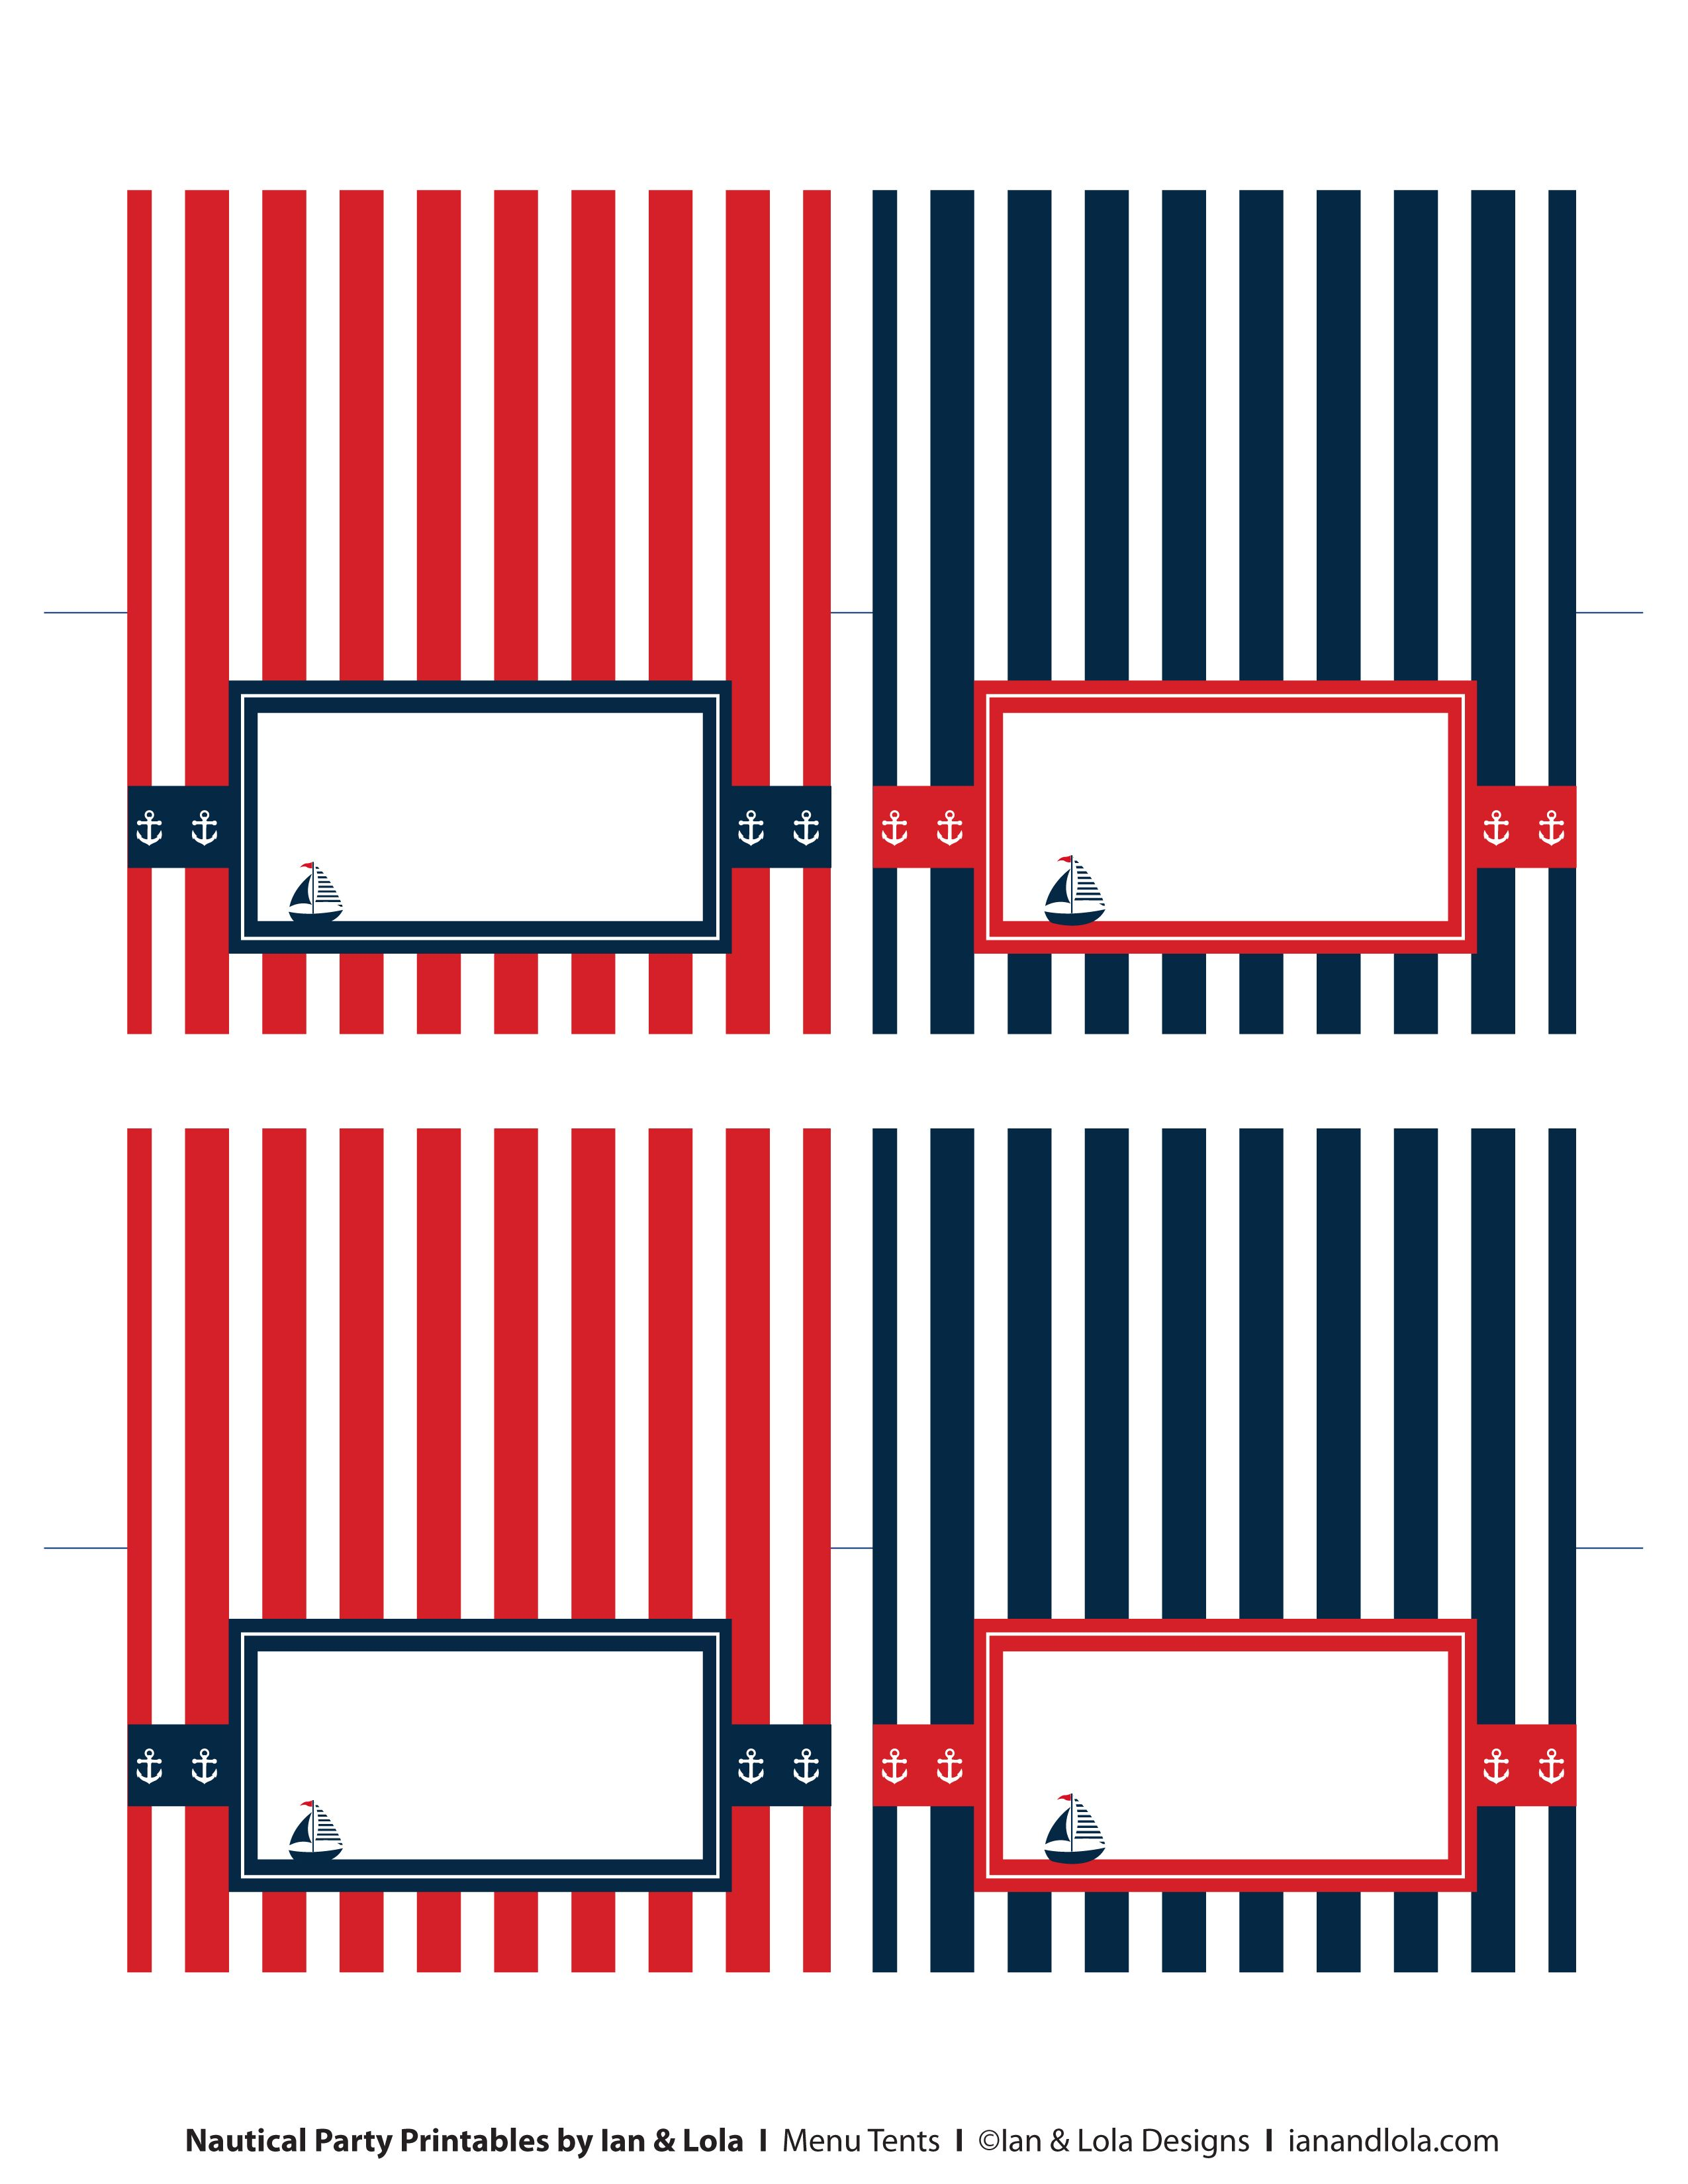 Free Nautical Party Printables from Ian & Lola Designs | Free ...